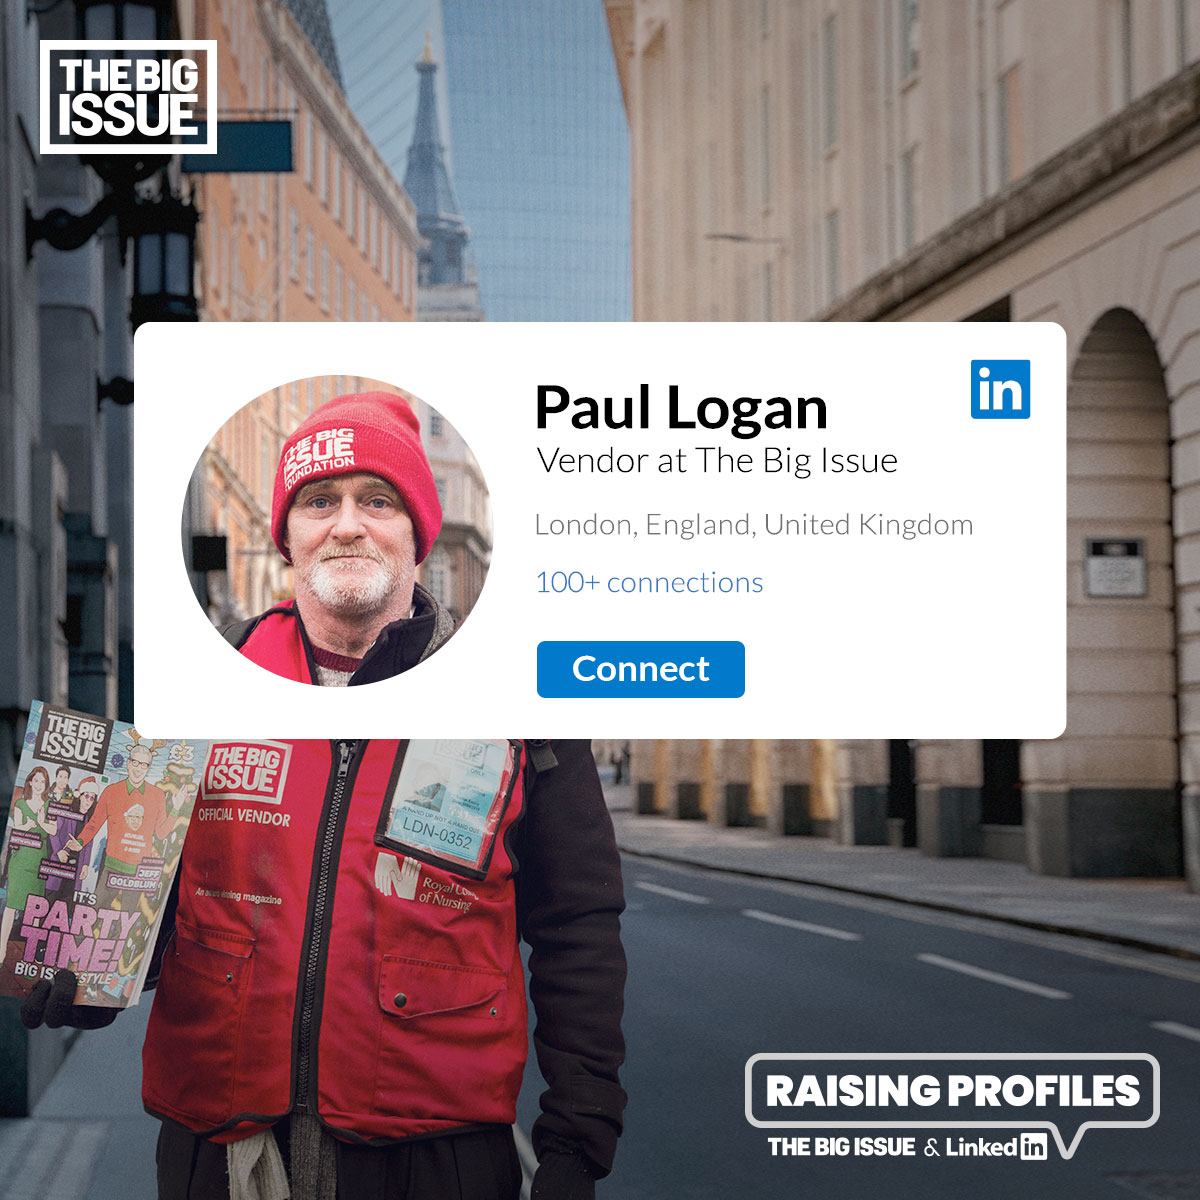 The Big Issue vendor - Paul Logan